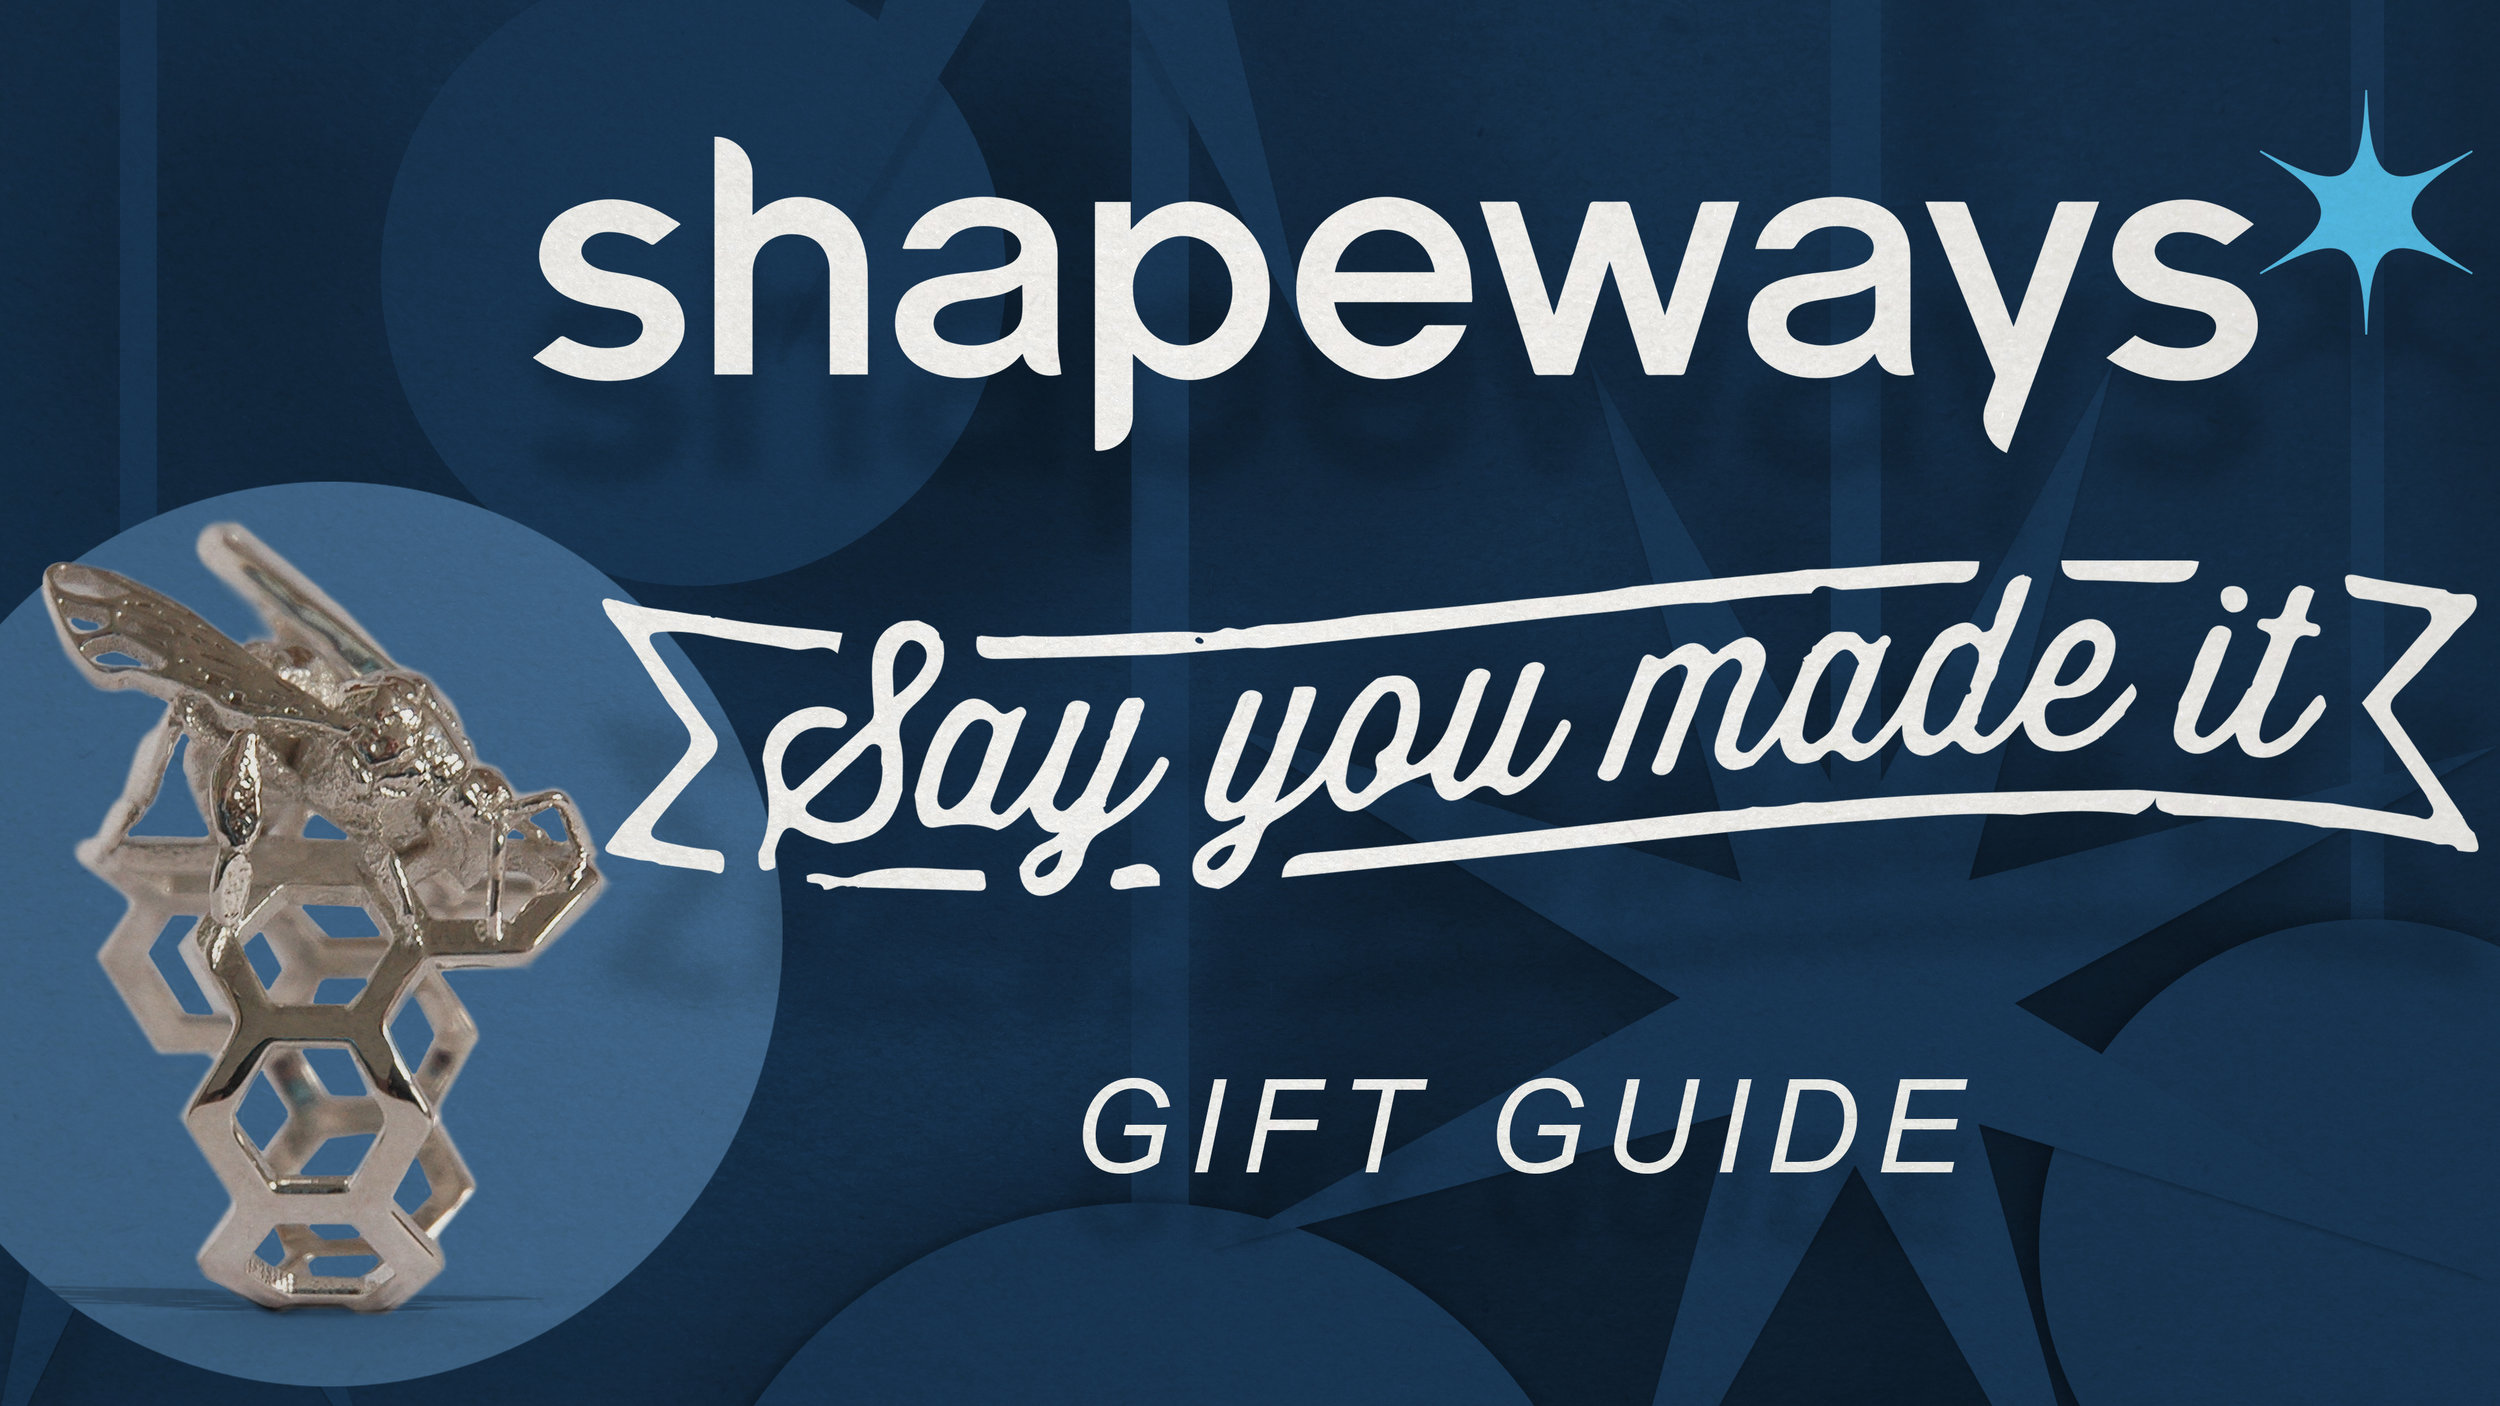 FEATURED IN THE SHAPEWAYS 2016 HOLIDAY GIFT GUIDE